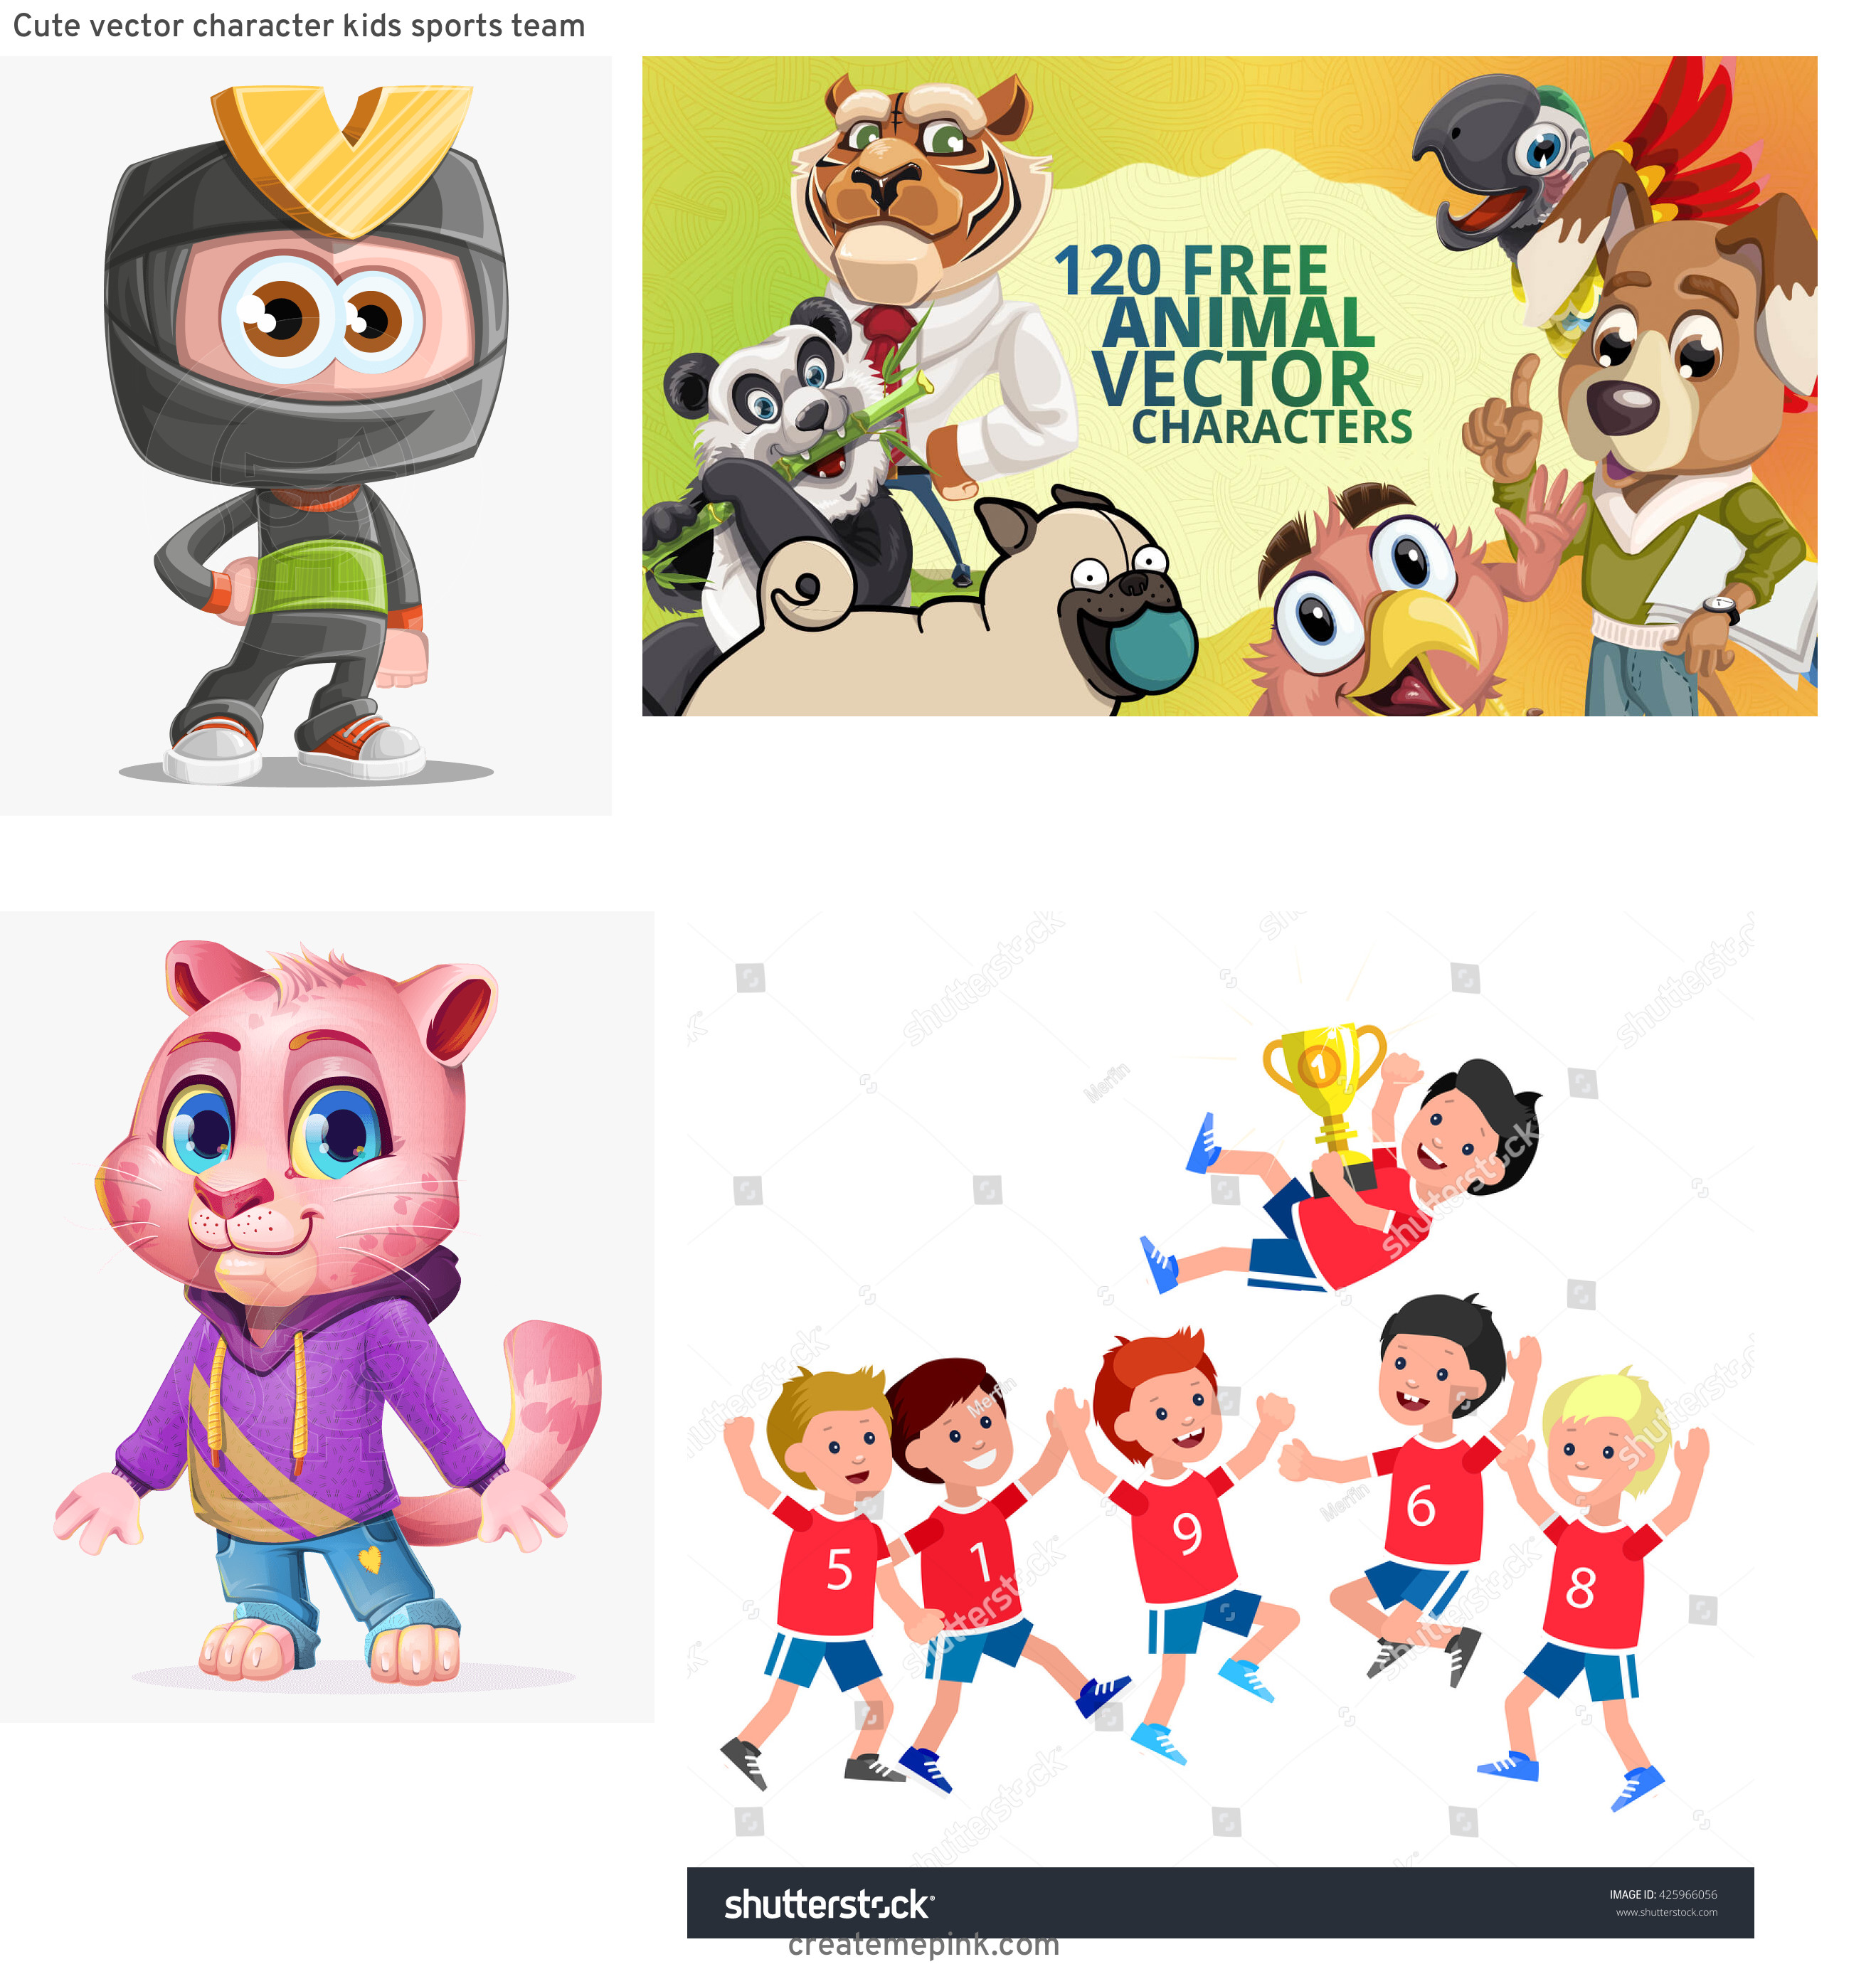 Vute Vector Character: Cute Vector Character Kids Sports Team